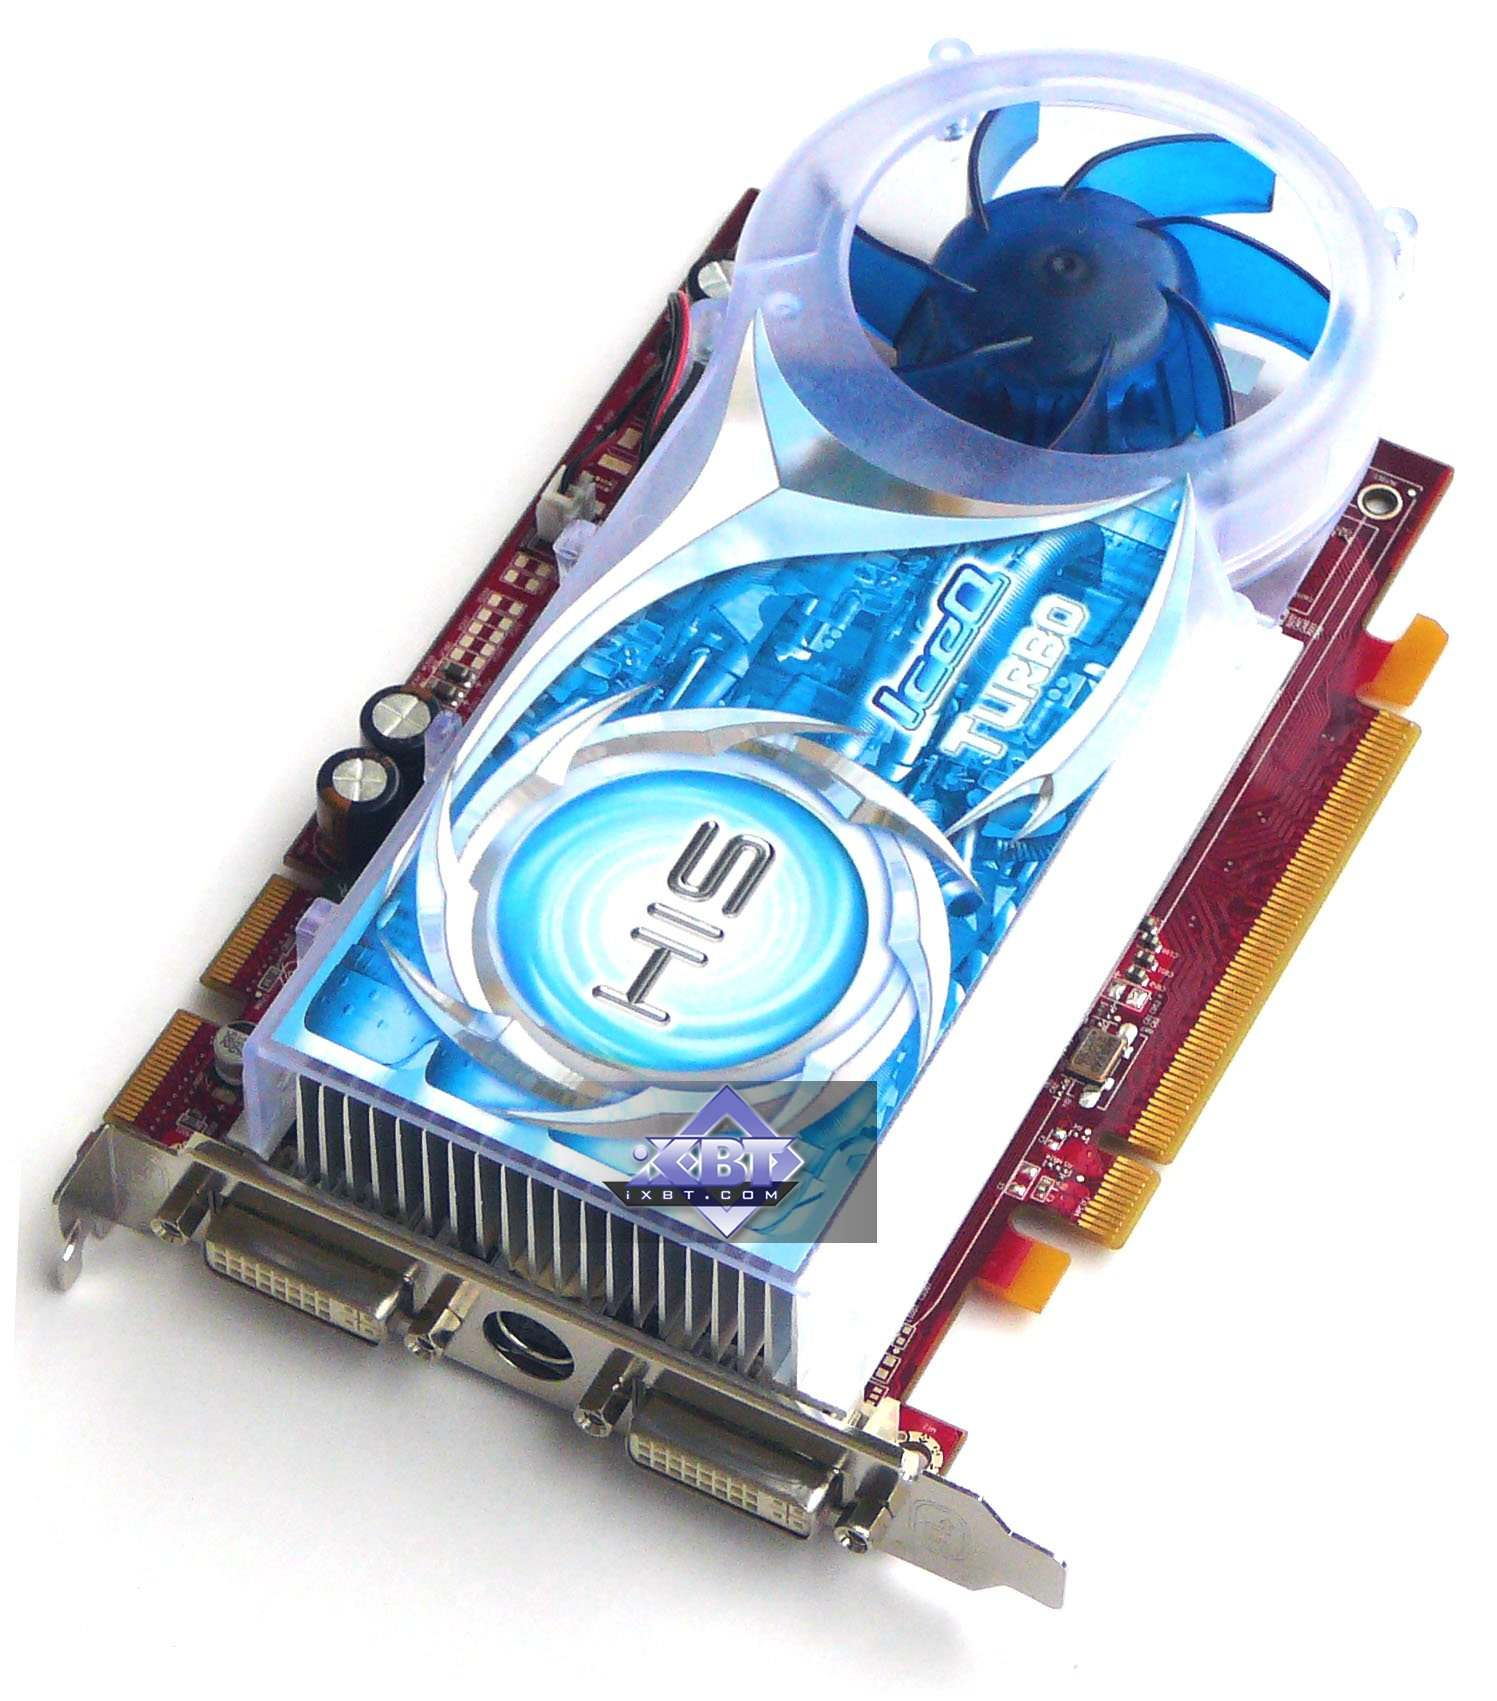 The second generation, ati radeon-based graphics solution for notebooks